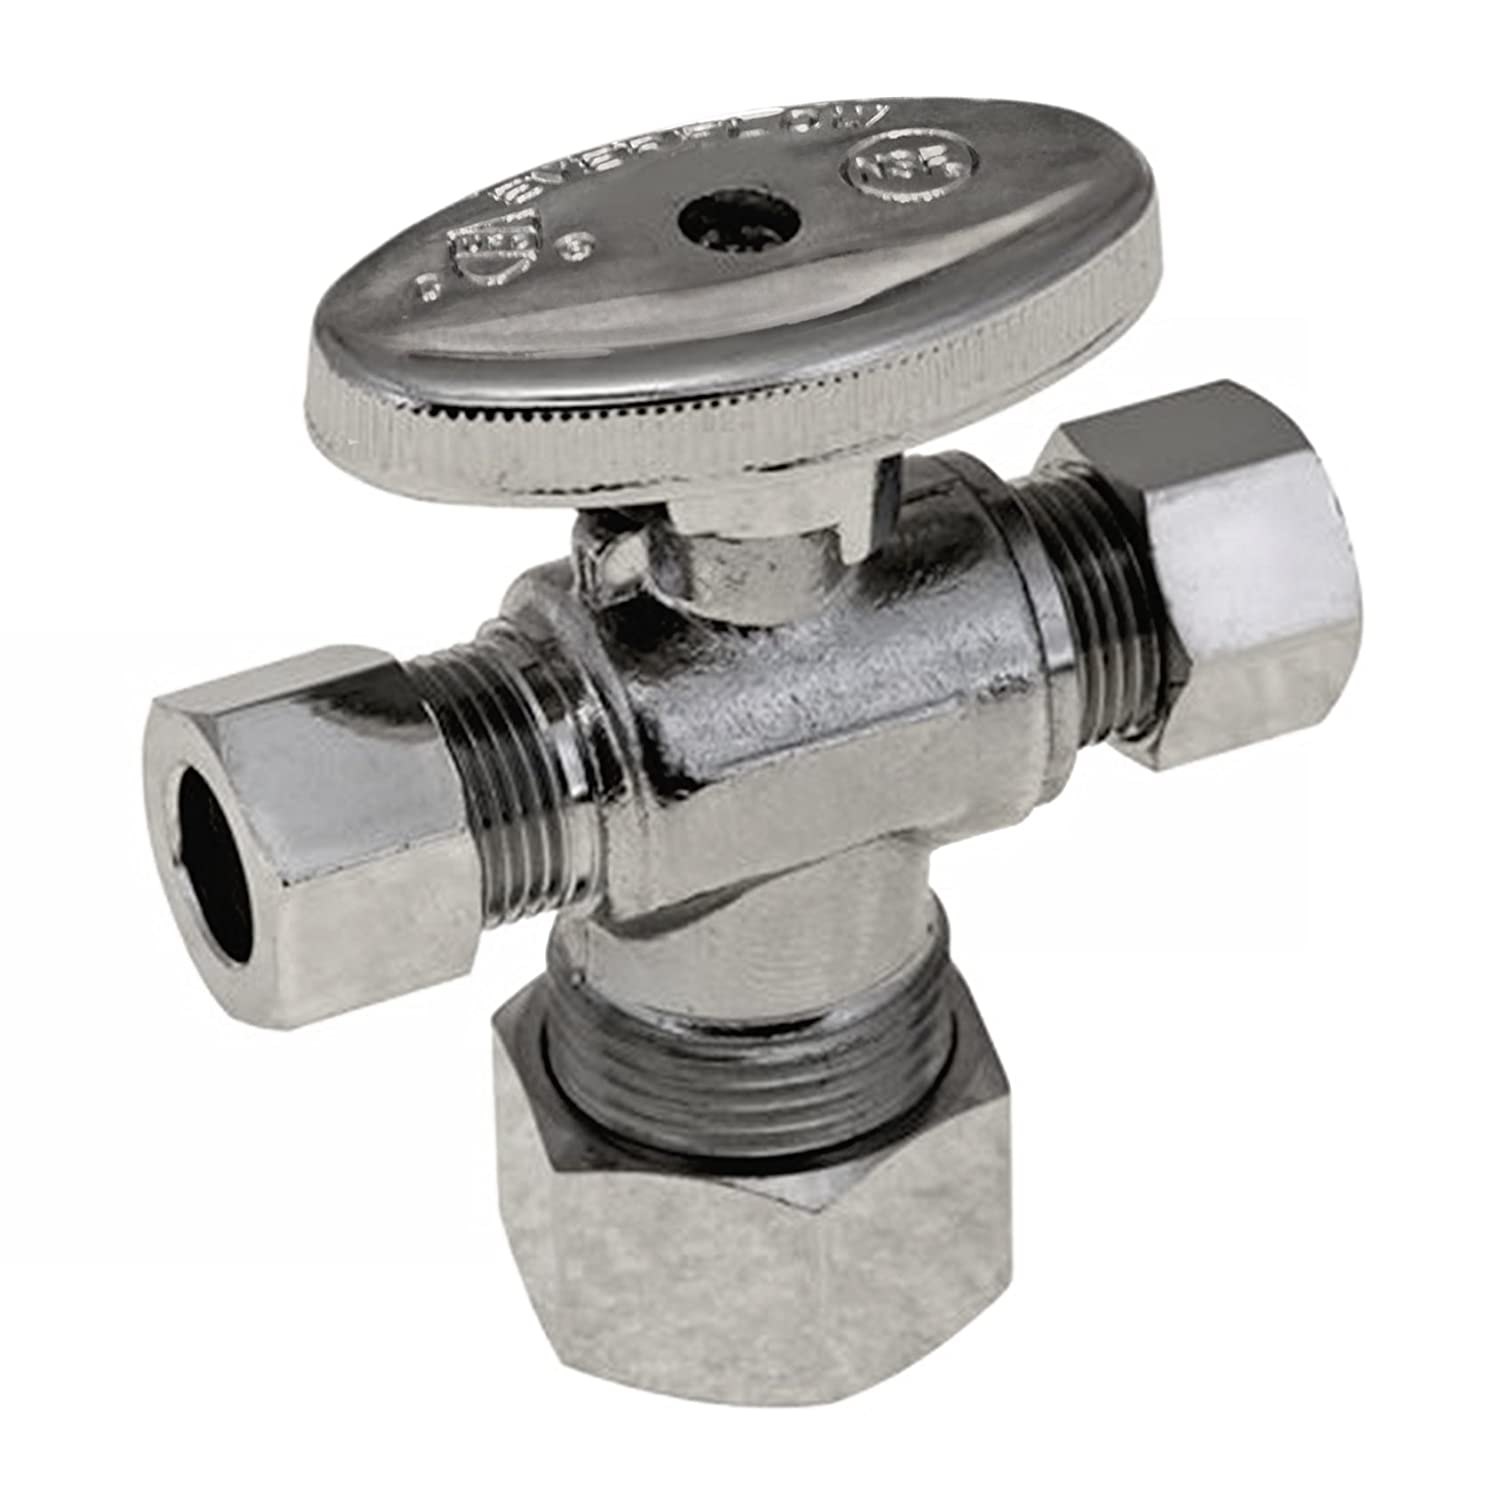 Everflow Supplies 86358PR-NL Lead Free 5//8-Inch Comp x 3//8-Inch x 3//8-Inch Compression Quarter Turn Dual Outlet Angle Valve